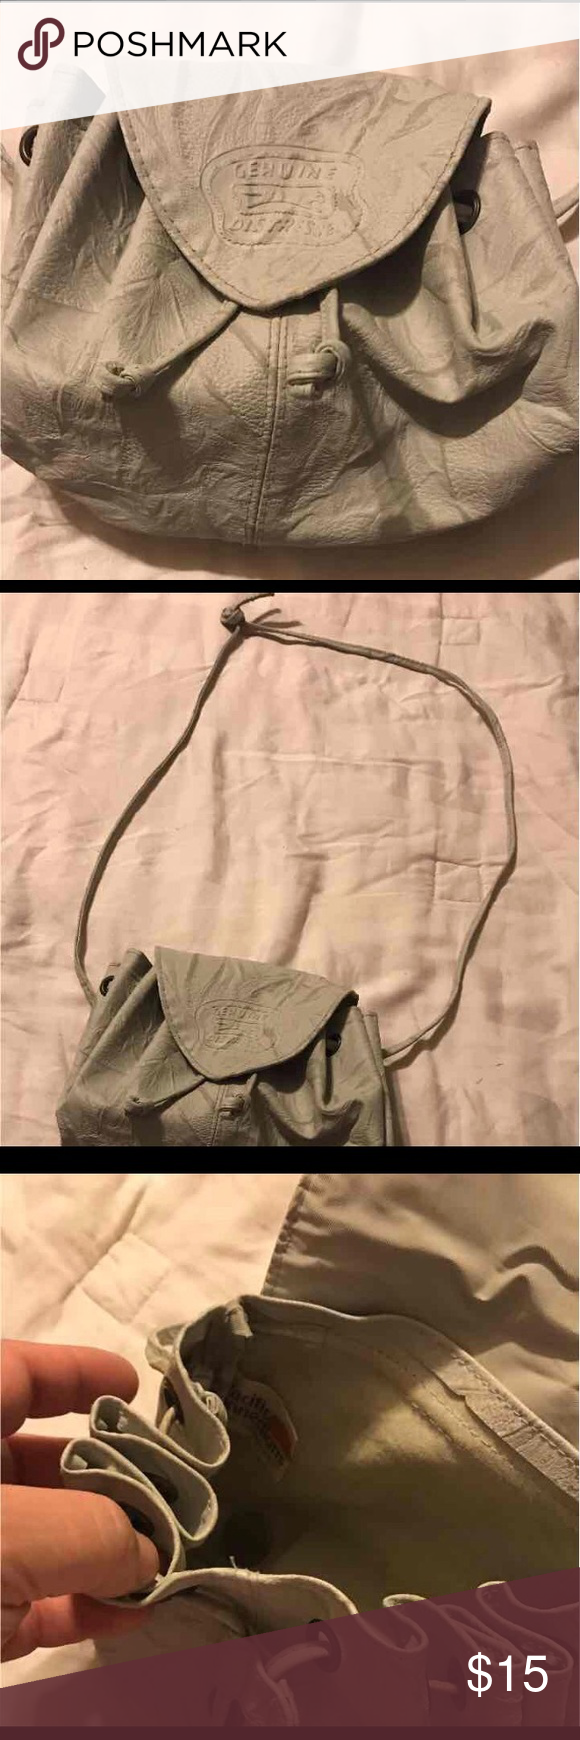 Pacific Connection distressed bag It cinched and is small enough when you do t need a big purse Bags Hobos